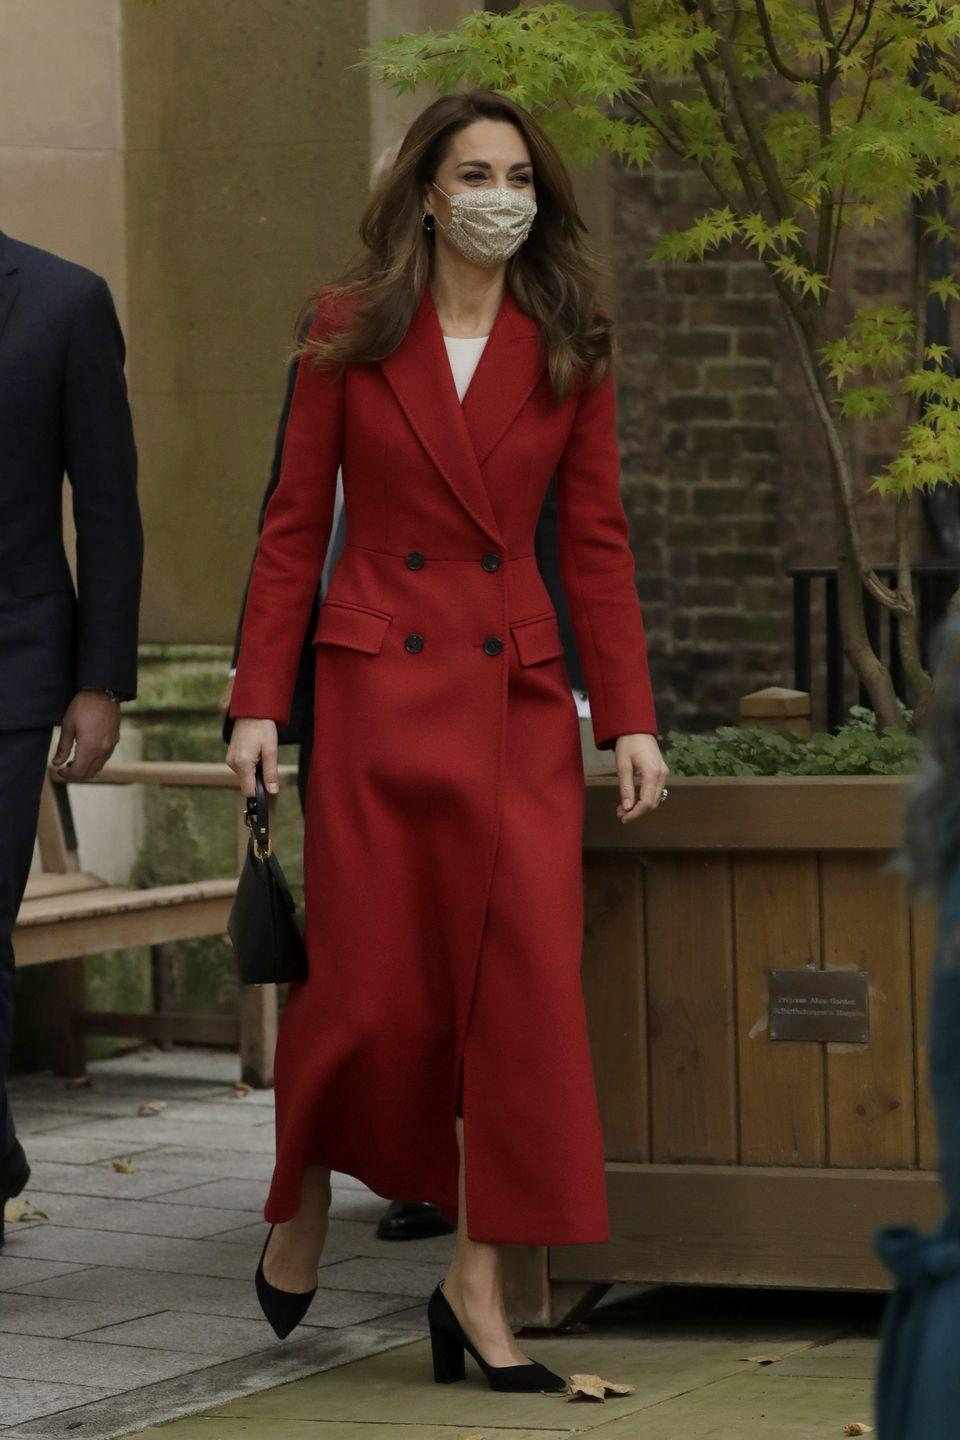 """<p>While visiting St. Bartholomew's Hospital with Prince William, Kate chose a striking red, double-breasted overcoat from the Duchess-approved brand, Alexander McQueen. The Duchess was at the hospital to <a href=""""https://www.townandcountrymag.com/society/tradition/a34425134/kate-middleton-red-coat-alexander-mcqueen-hold-still-photo/"""" rel=""""nofollow noopener"""" target=""""_blank"""" data-ylk=""""slk:launch her Hold Still photo show"""" class=""""link rapid-noclick-resp"""">launch her <em>Hold Still</em> photo show</a>, which she worked on for much of lockdown. </p>"""